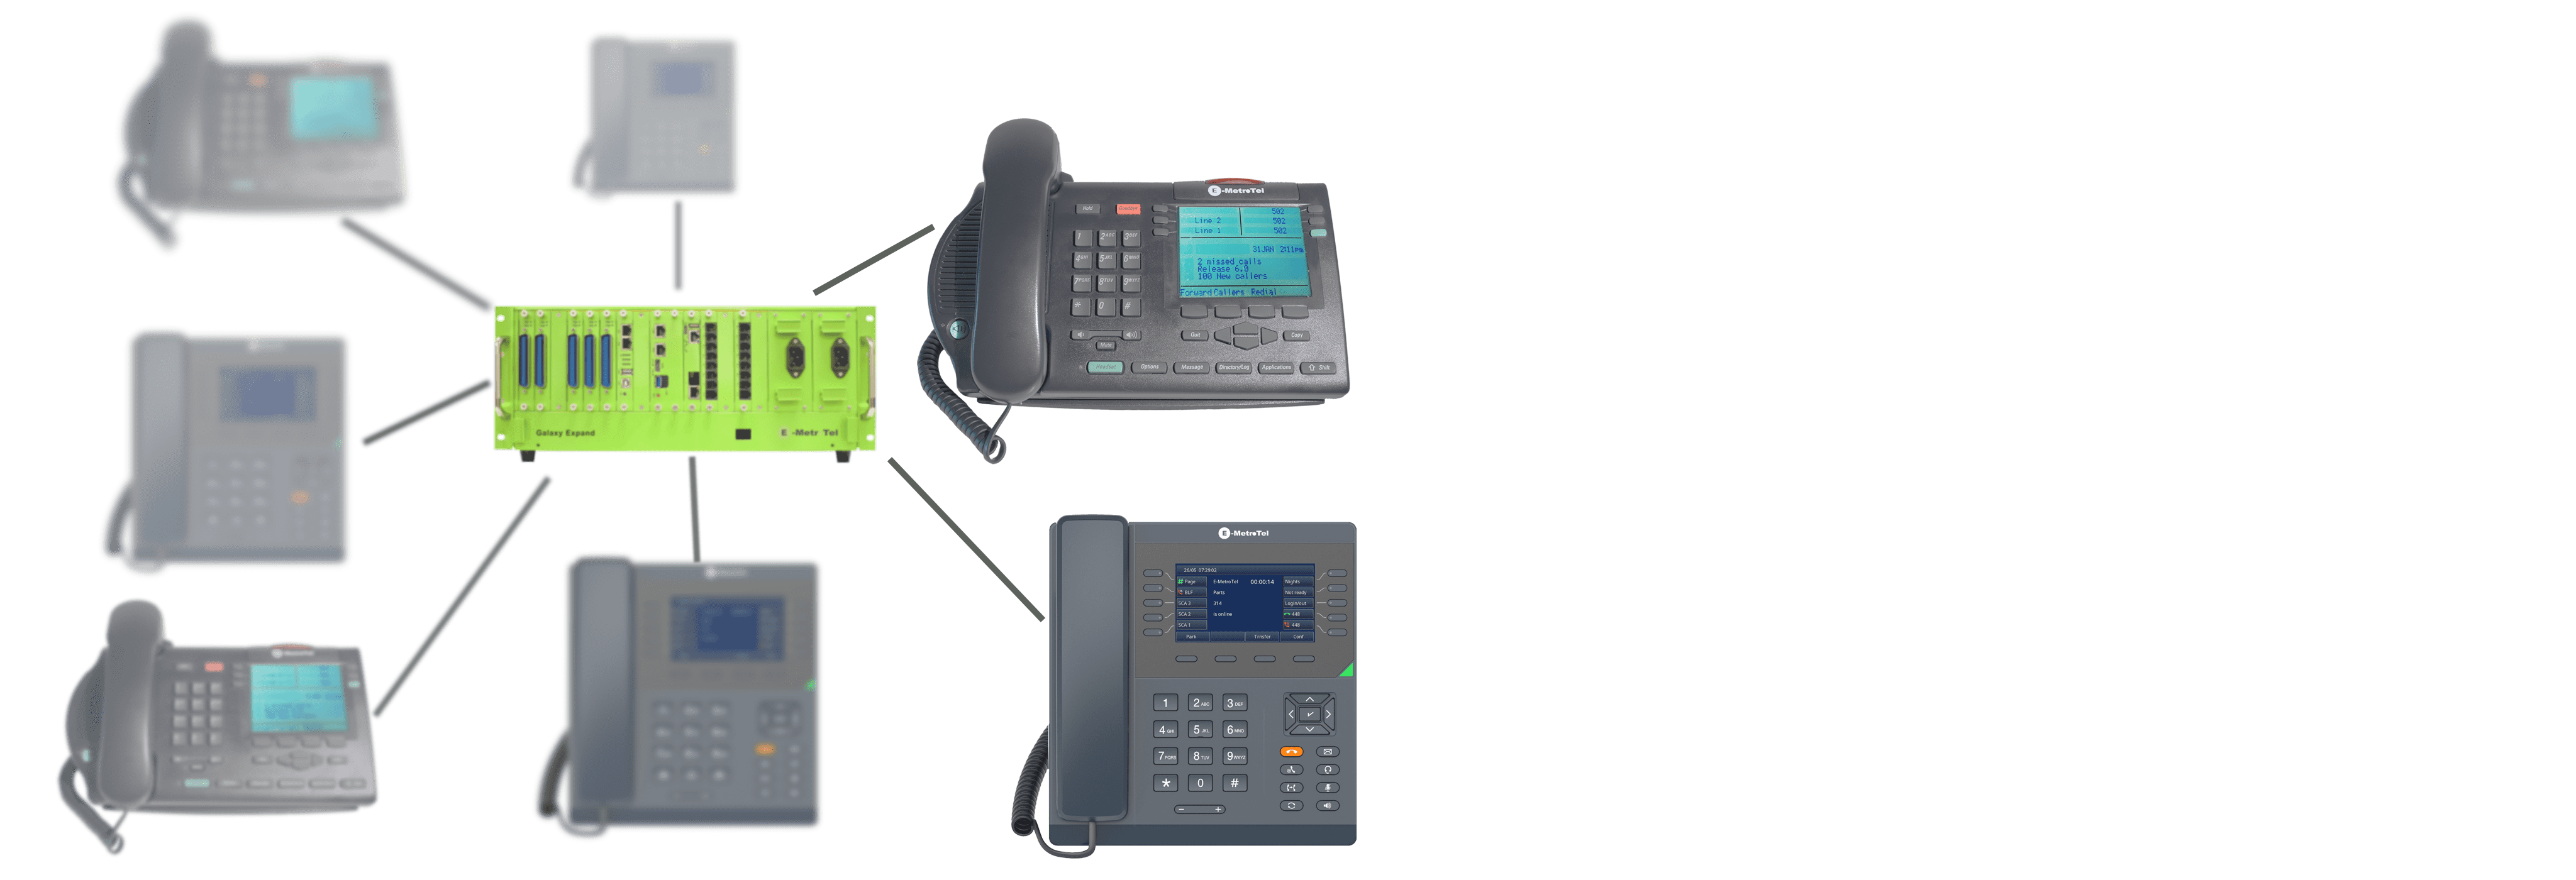 conferencing telephones image